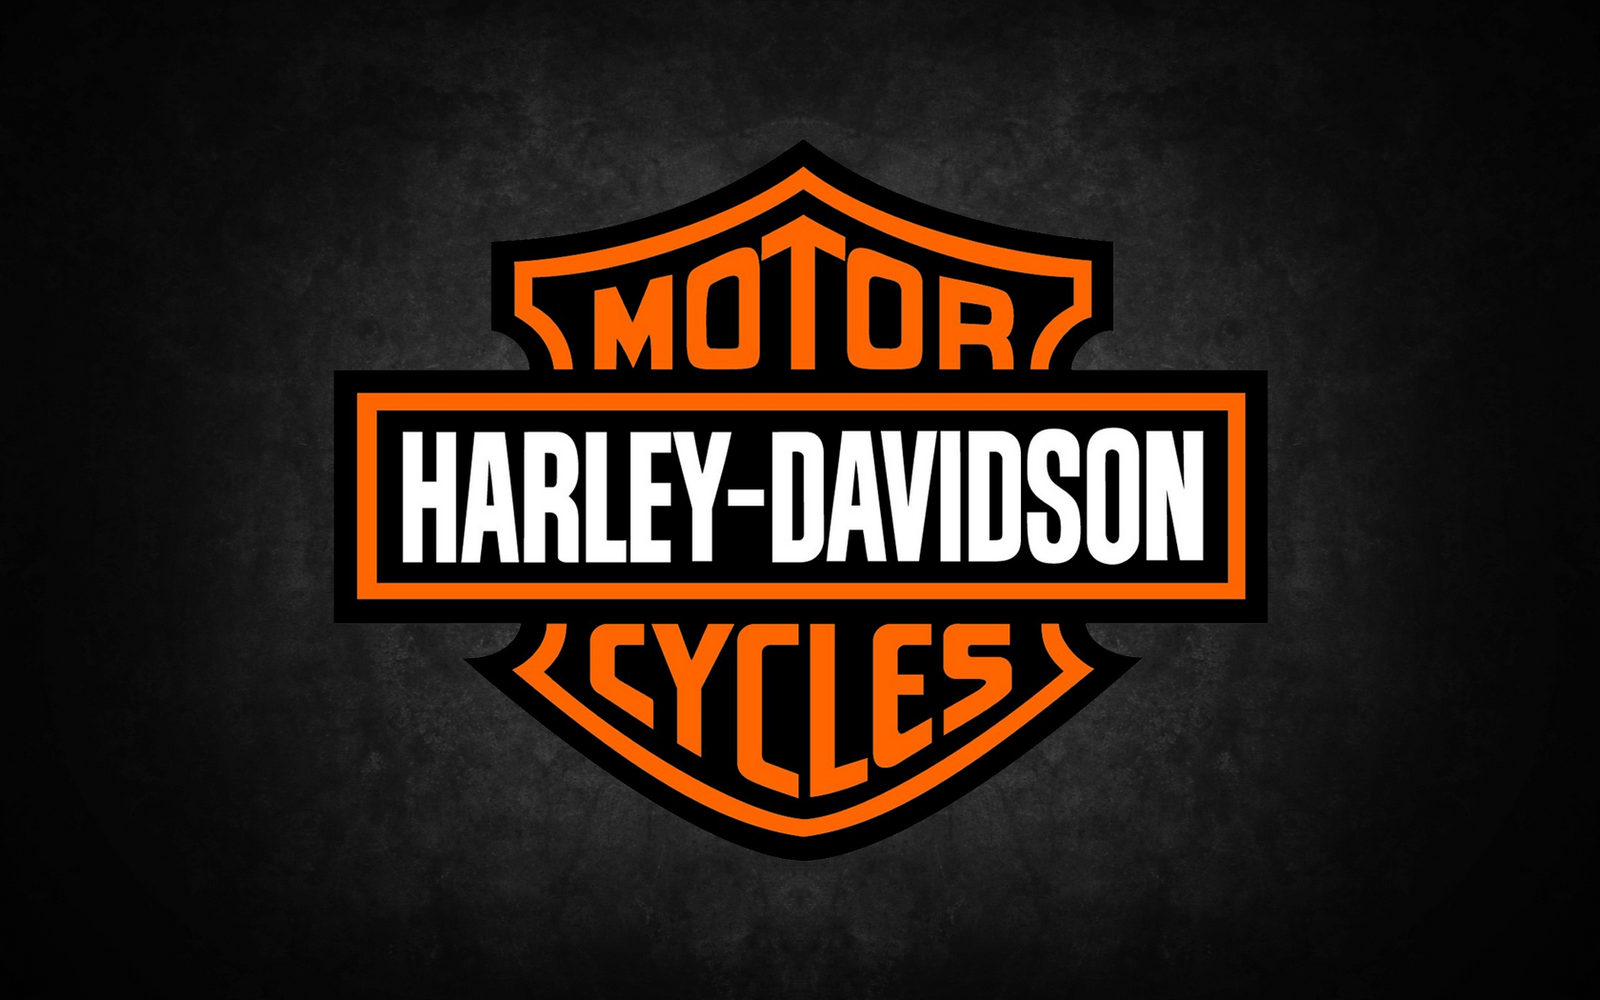 Harley Davidson Logo Png Available In Different Size image #16316